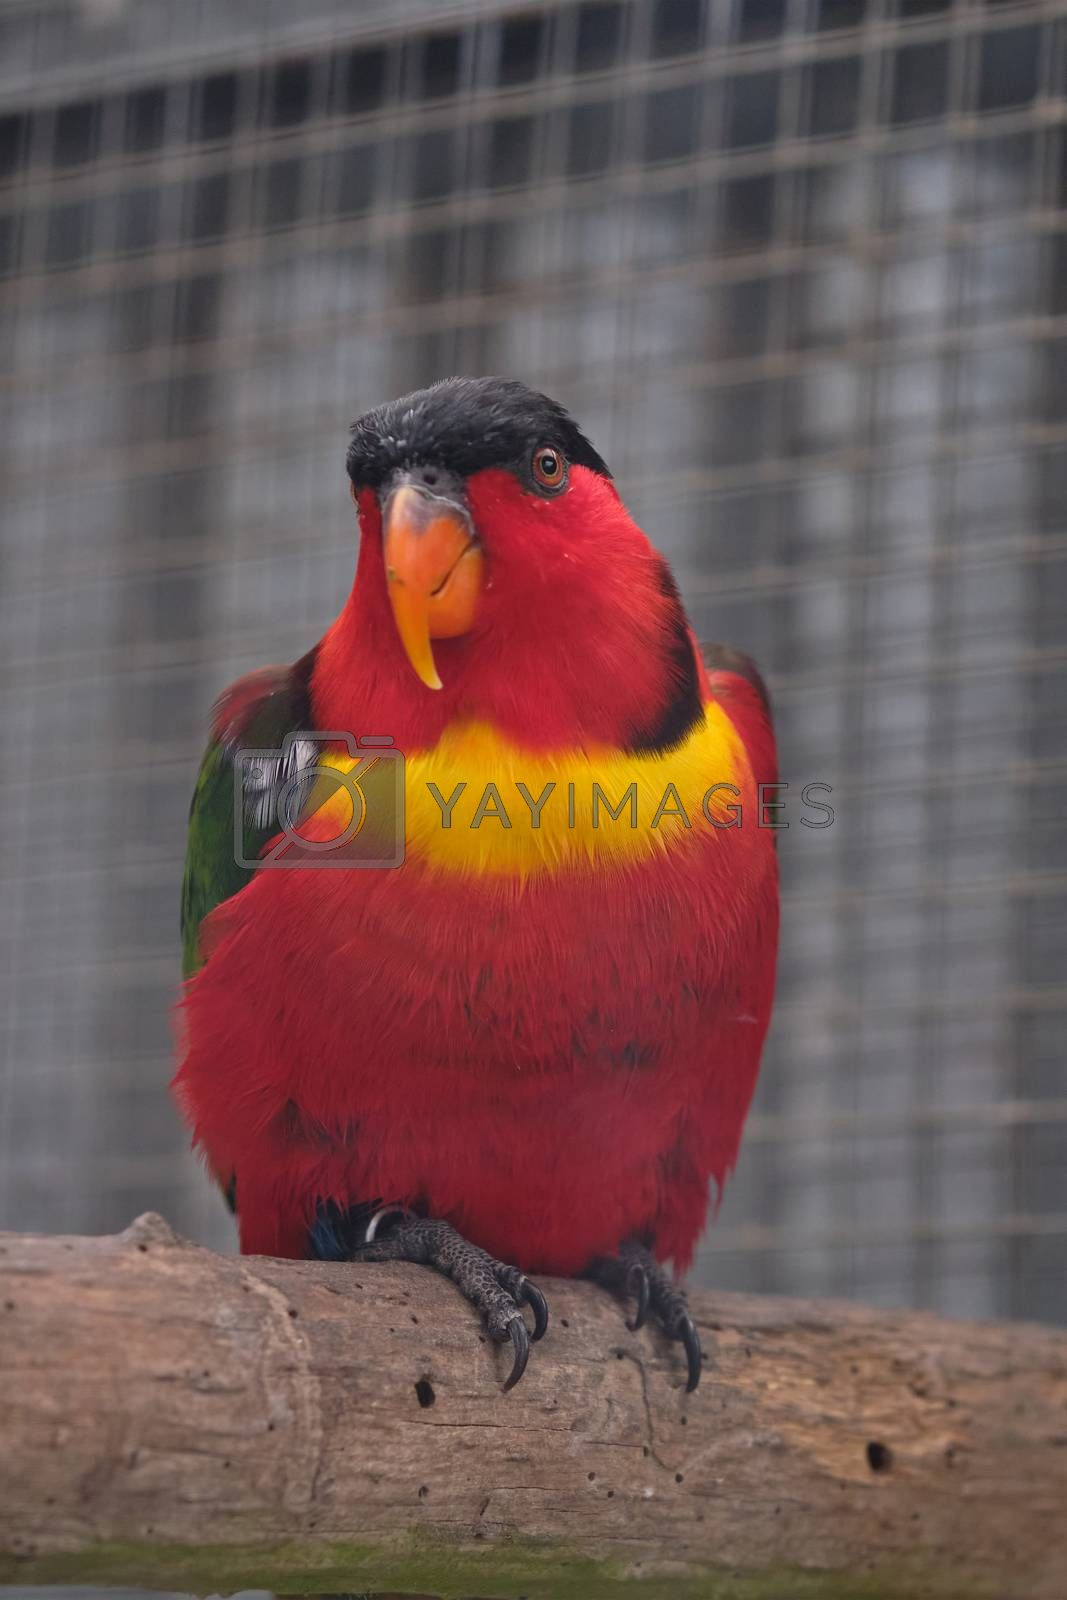 A colourful red bird, a womans Lorikeet, is sitting on a branch.